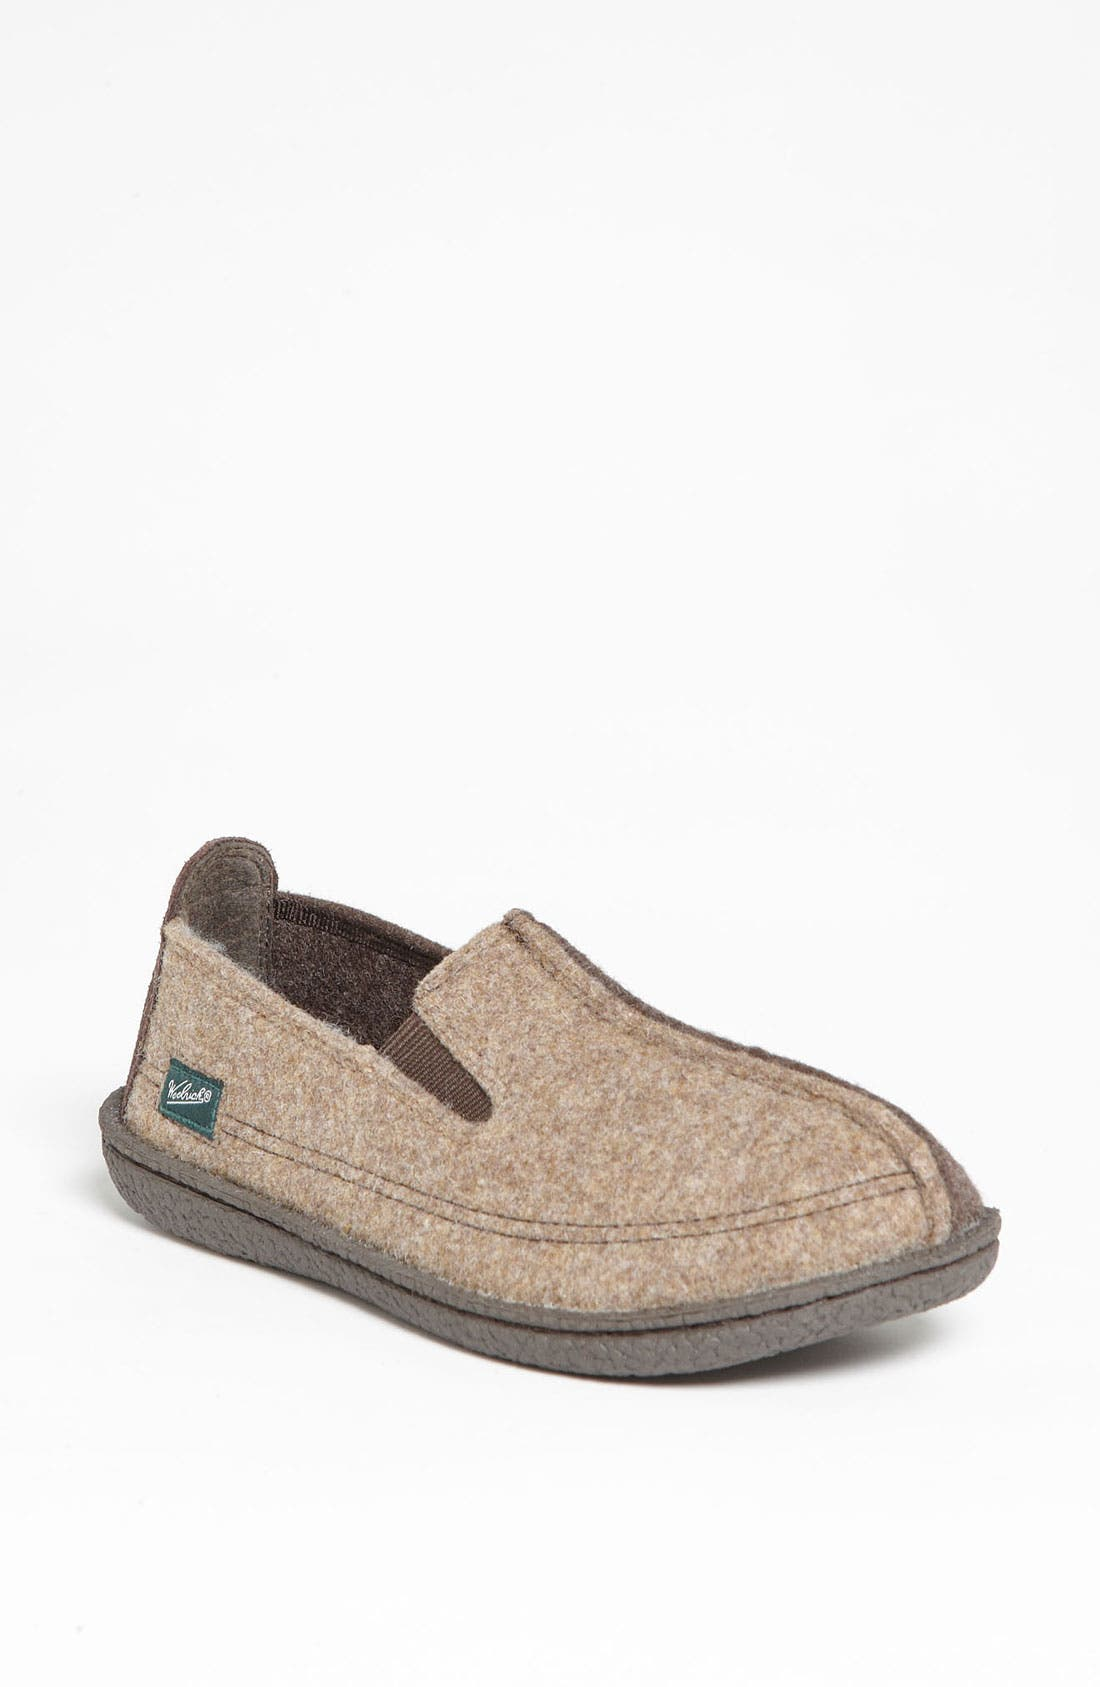 Main Image - Woolrich 'Plumtree' Slipper